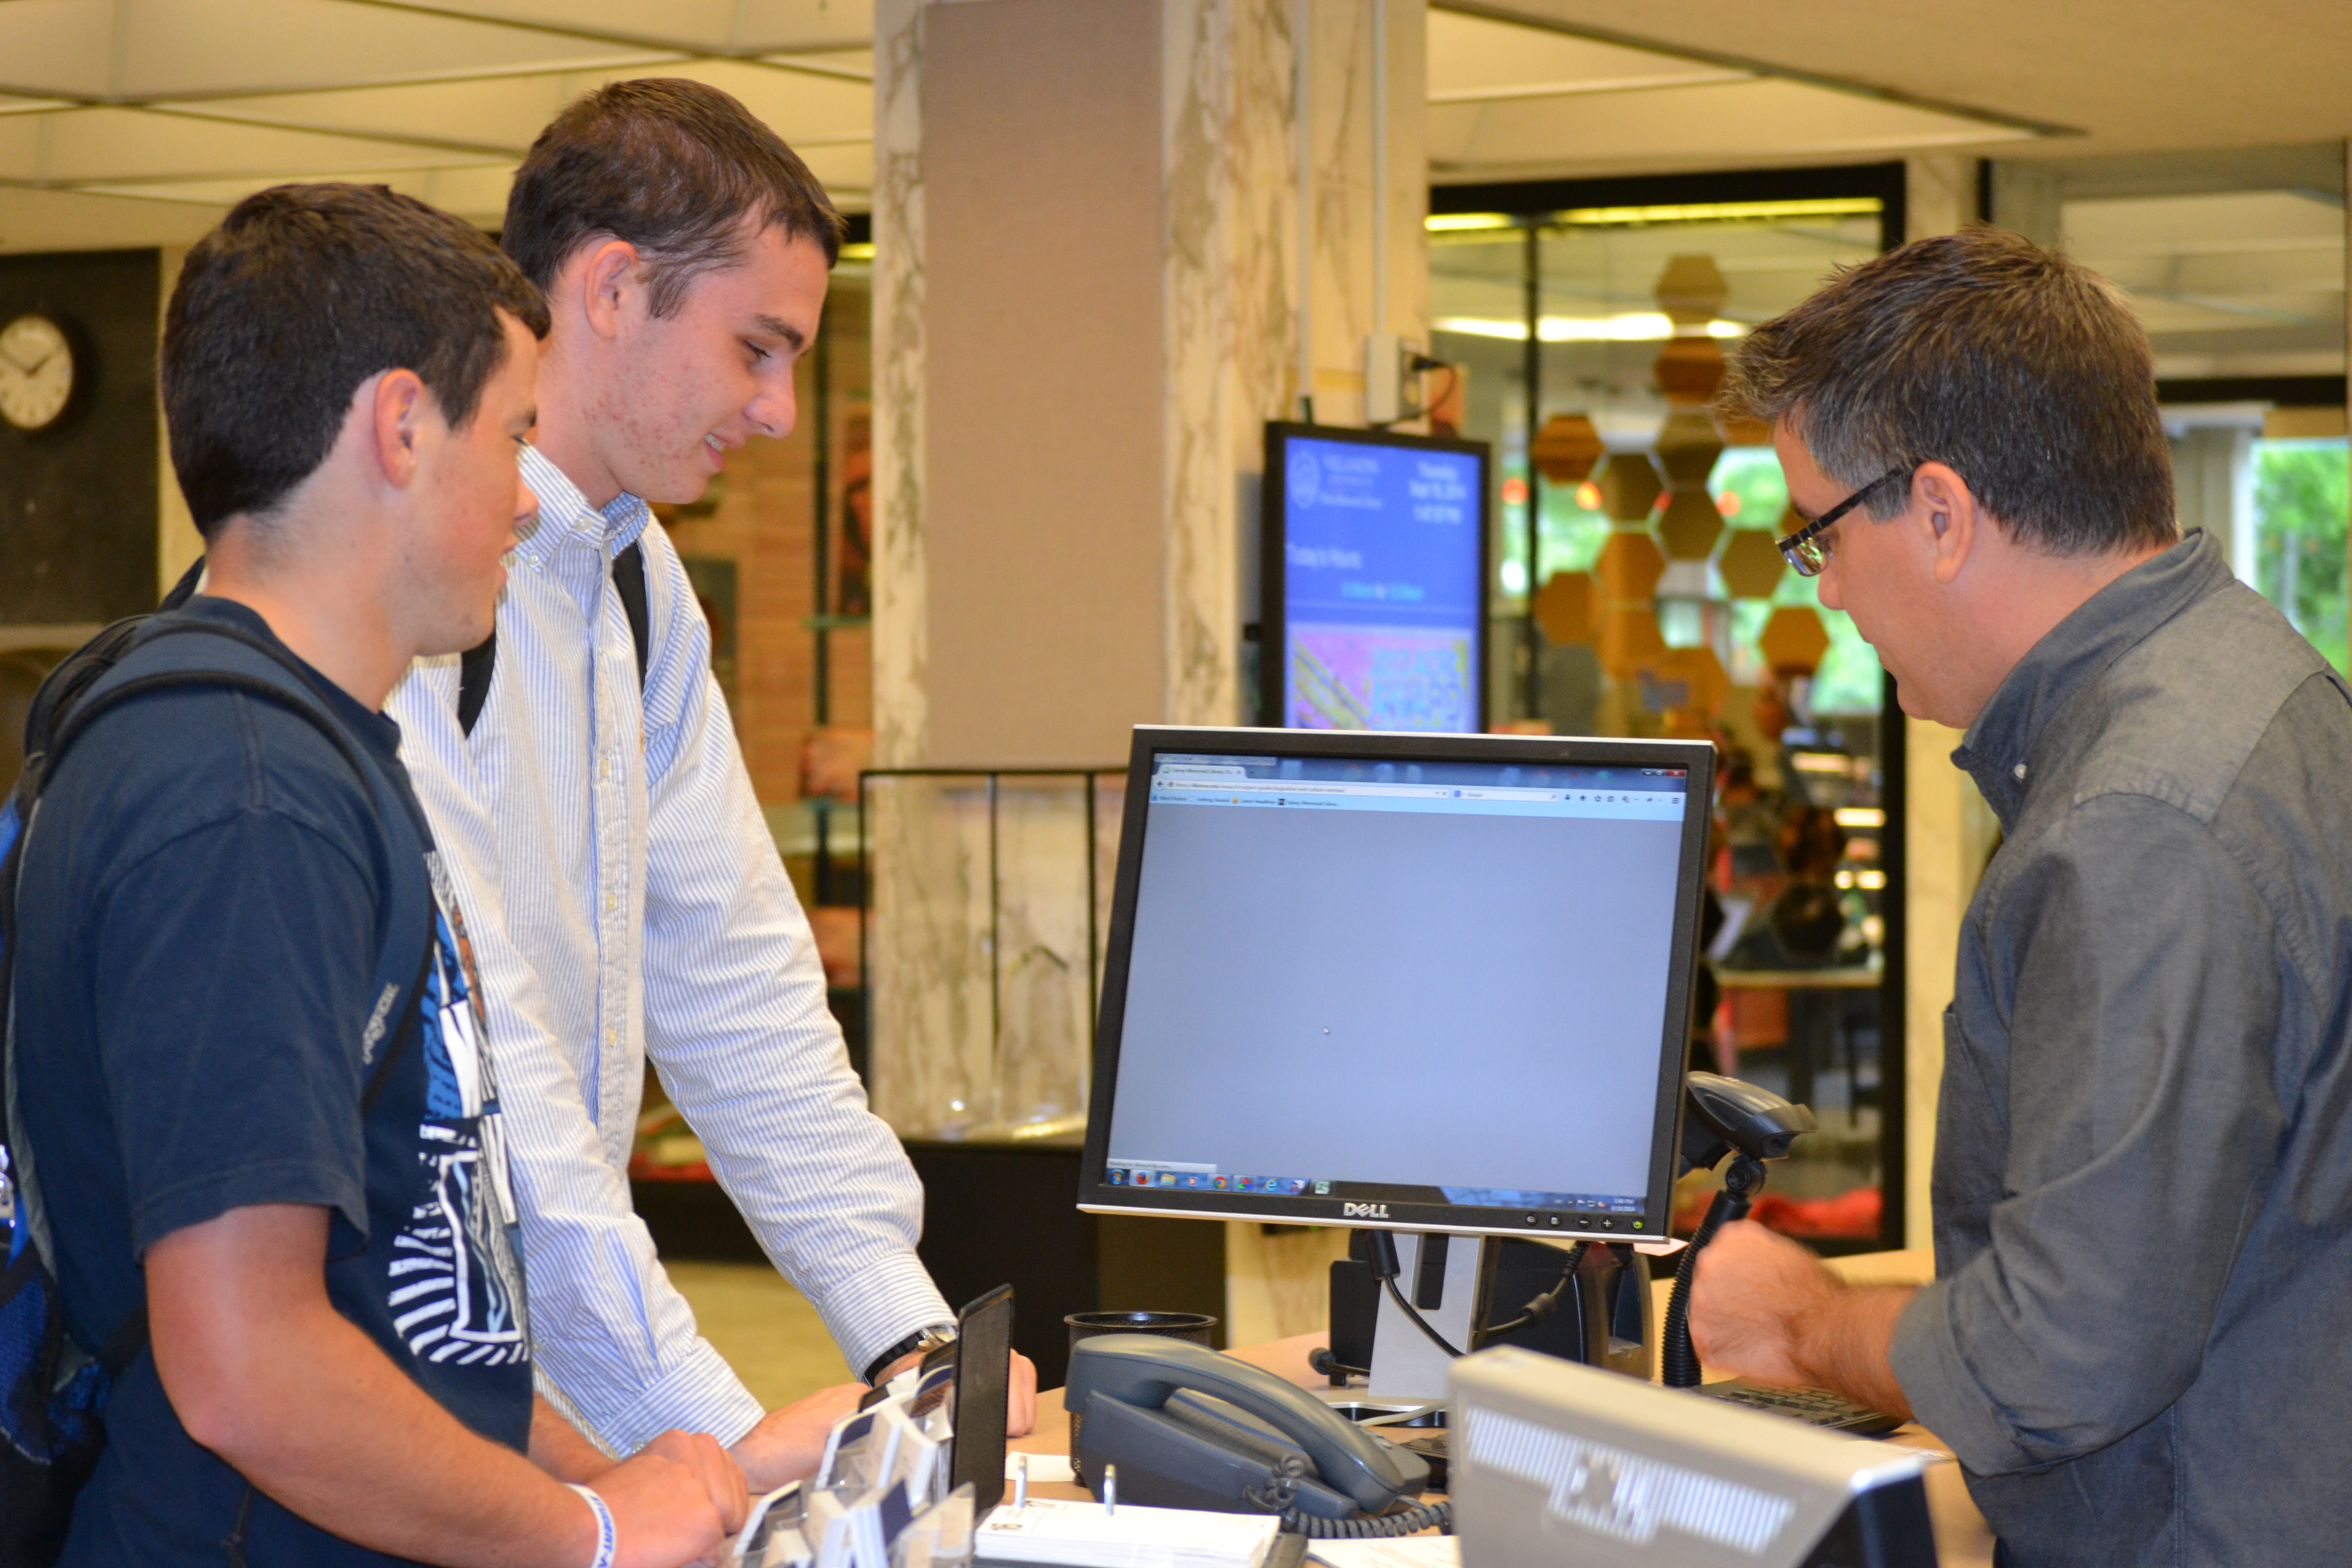 Librarian Rob LeBlanc, right, works with first year students Conor Quinn and Steve